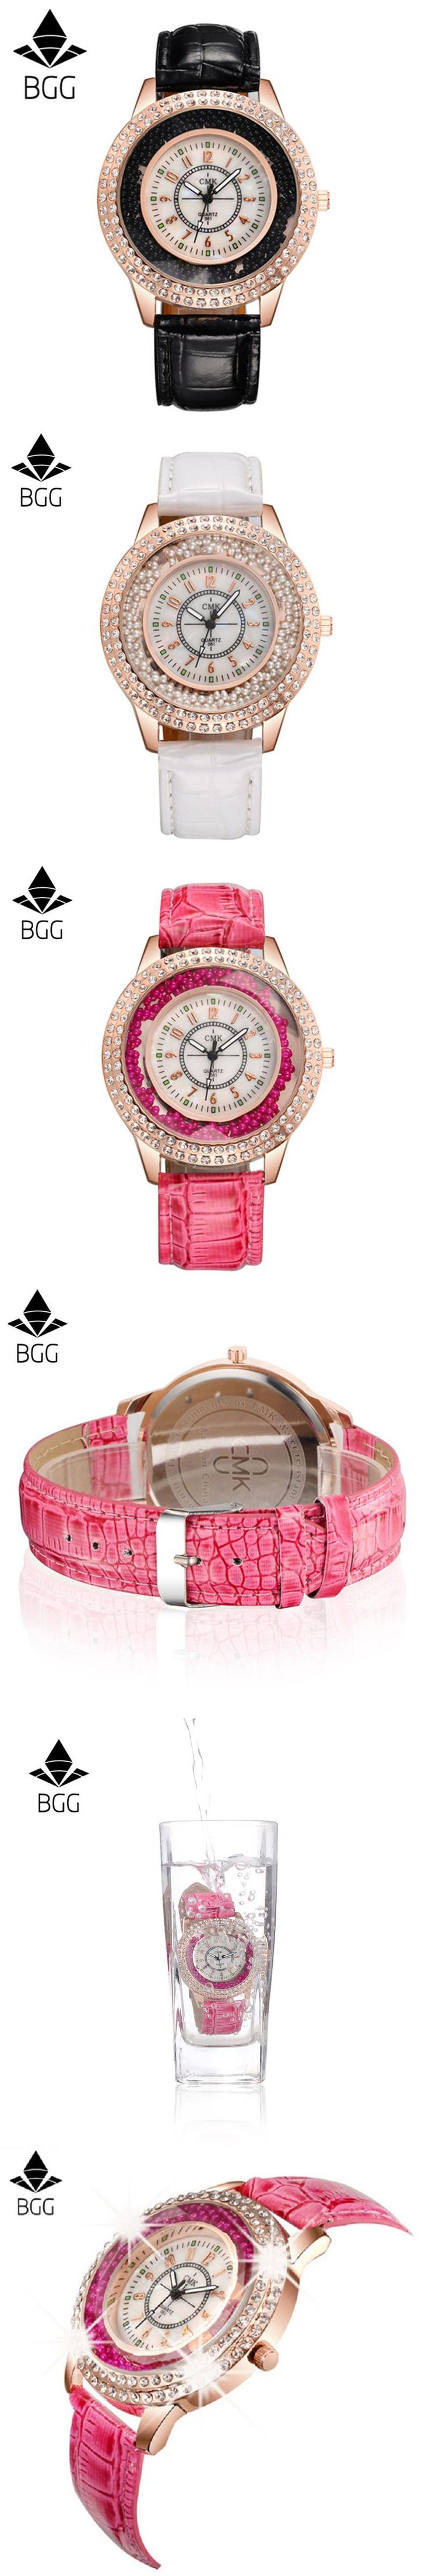 BGG 2017 Relogio Feminino Quartz Fashion Simple Watch Leather Strap Crystal Rhinestone Gift Wristwatch Waterproof Hot Sale Watch